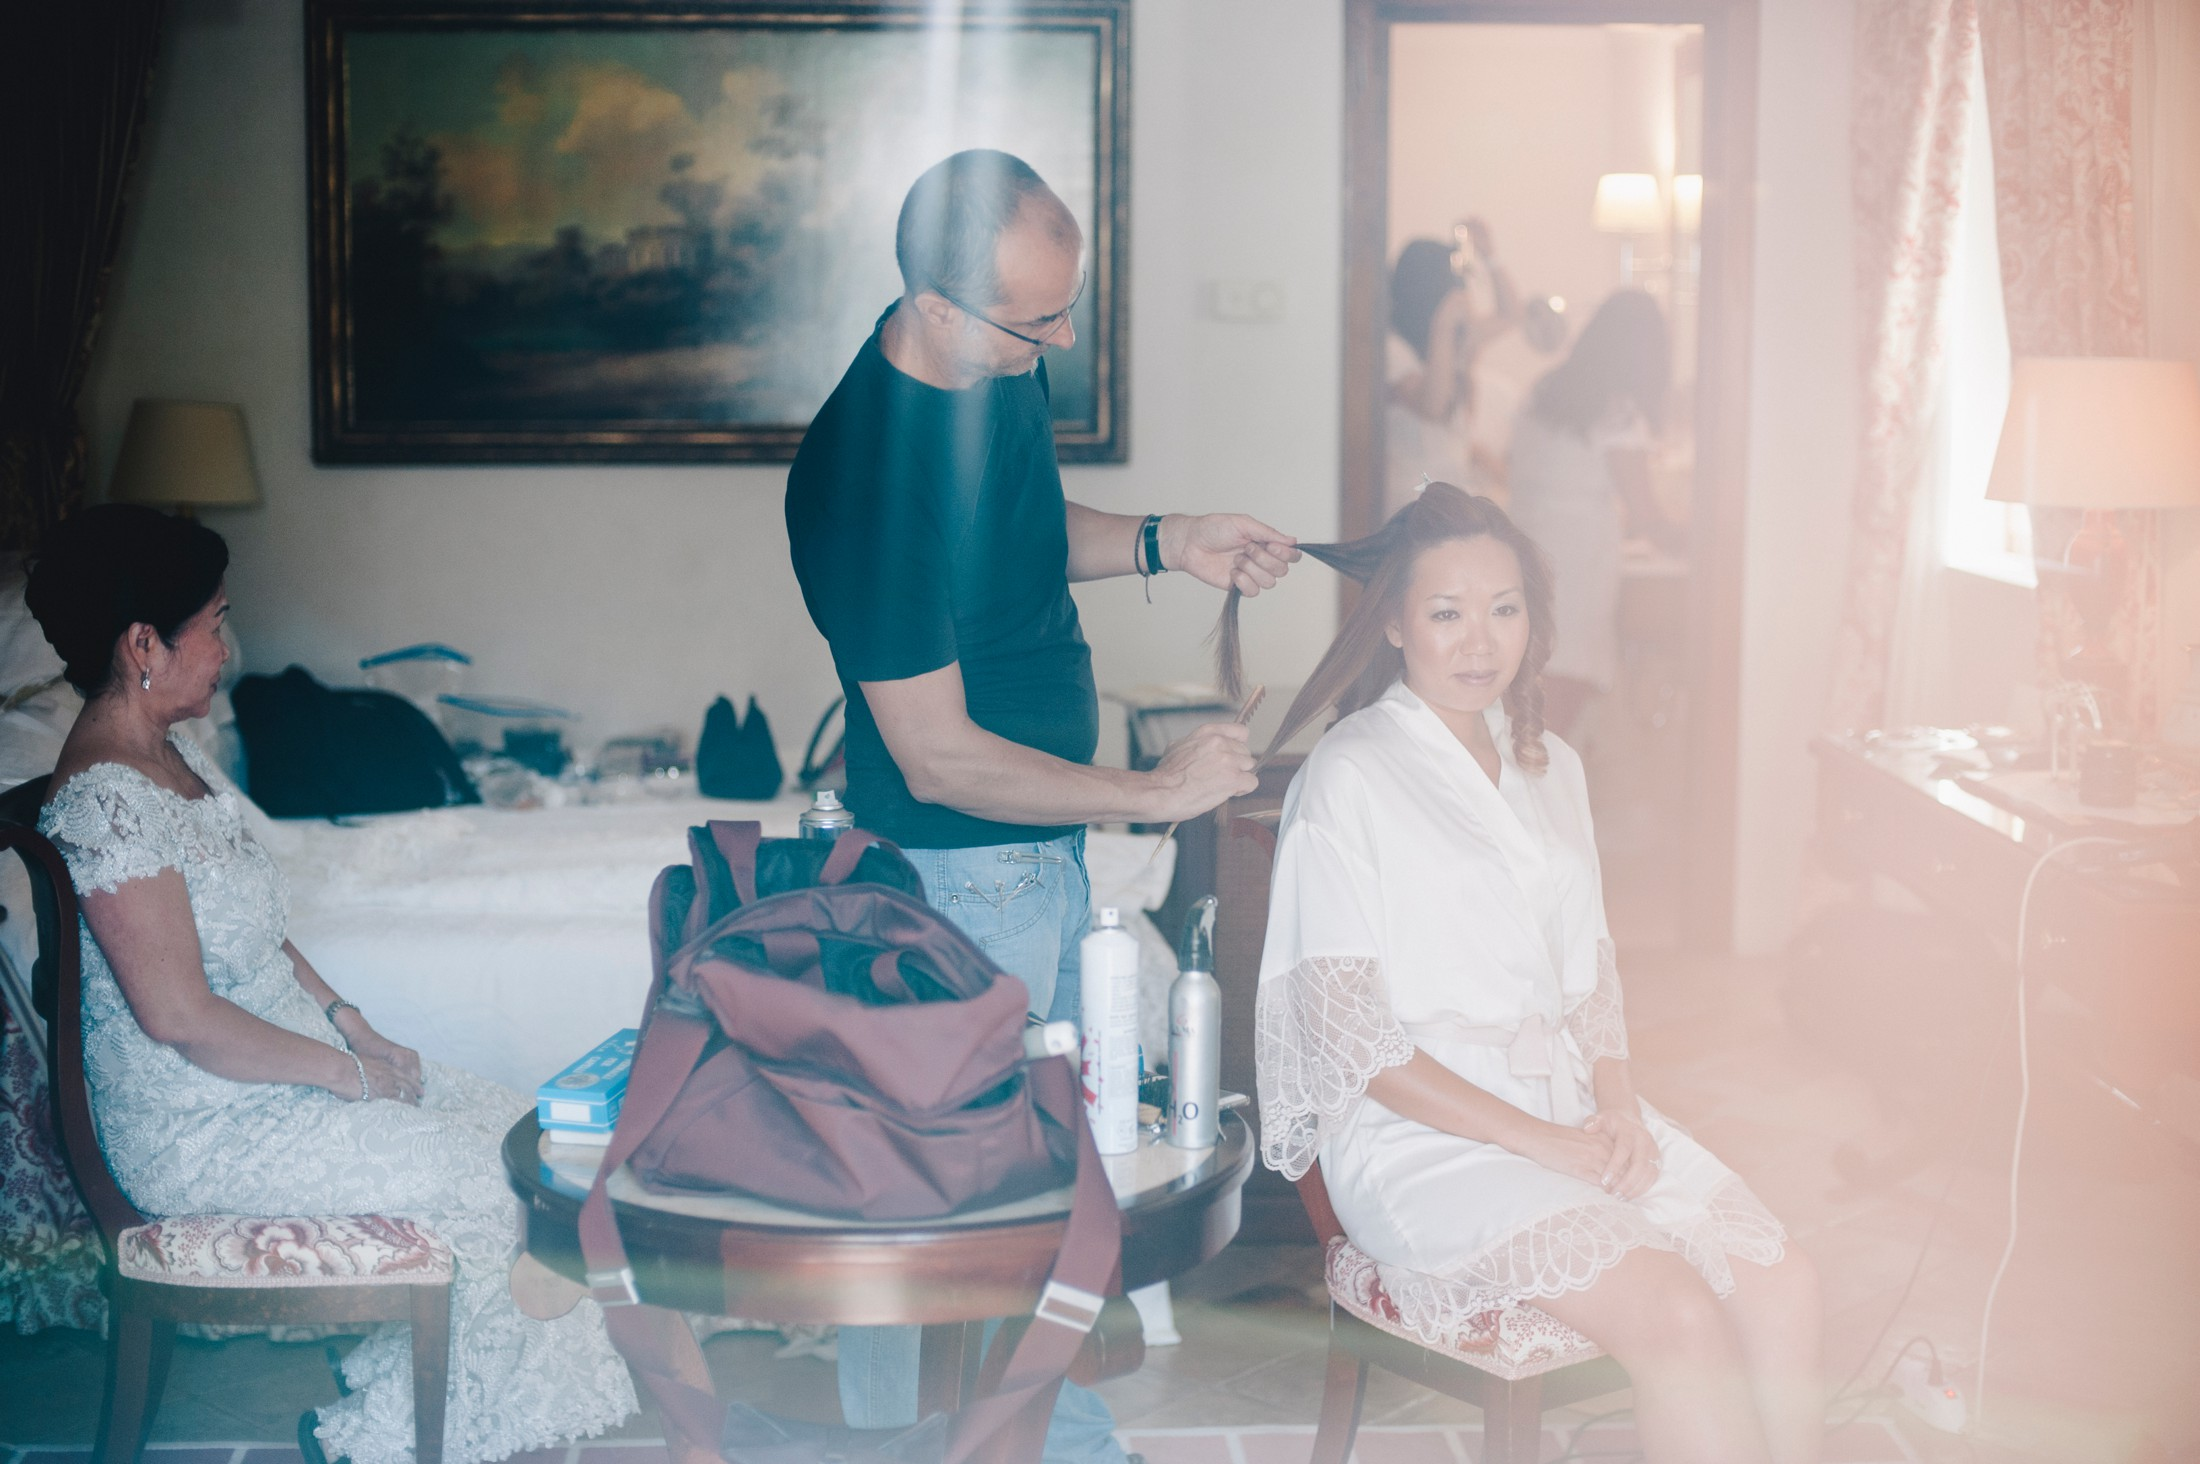 the bride during the preparation